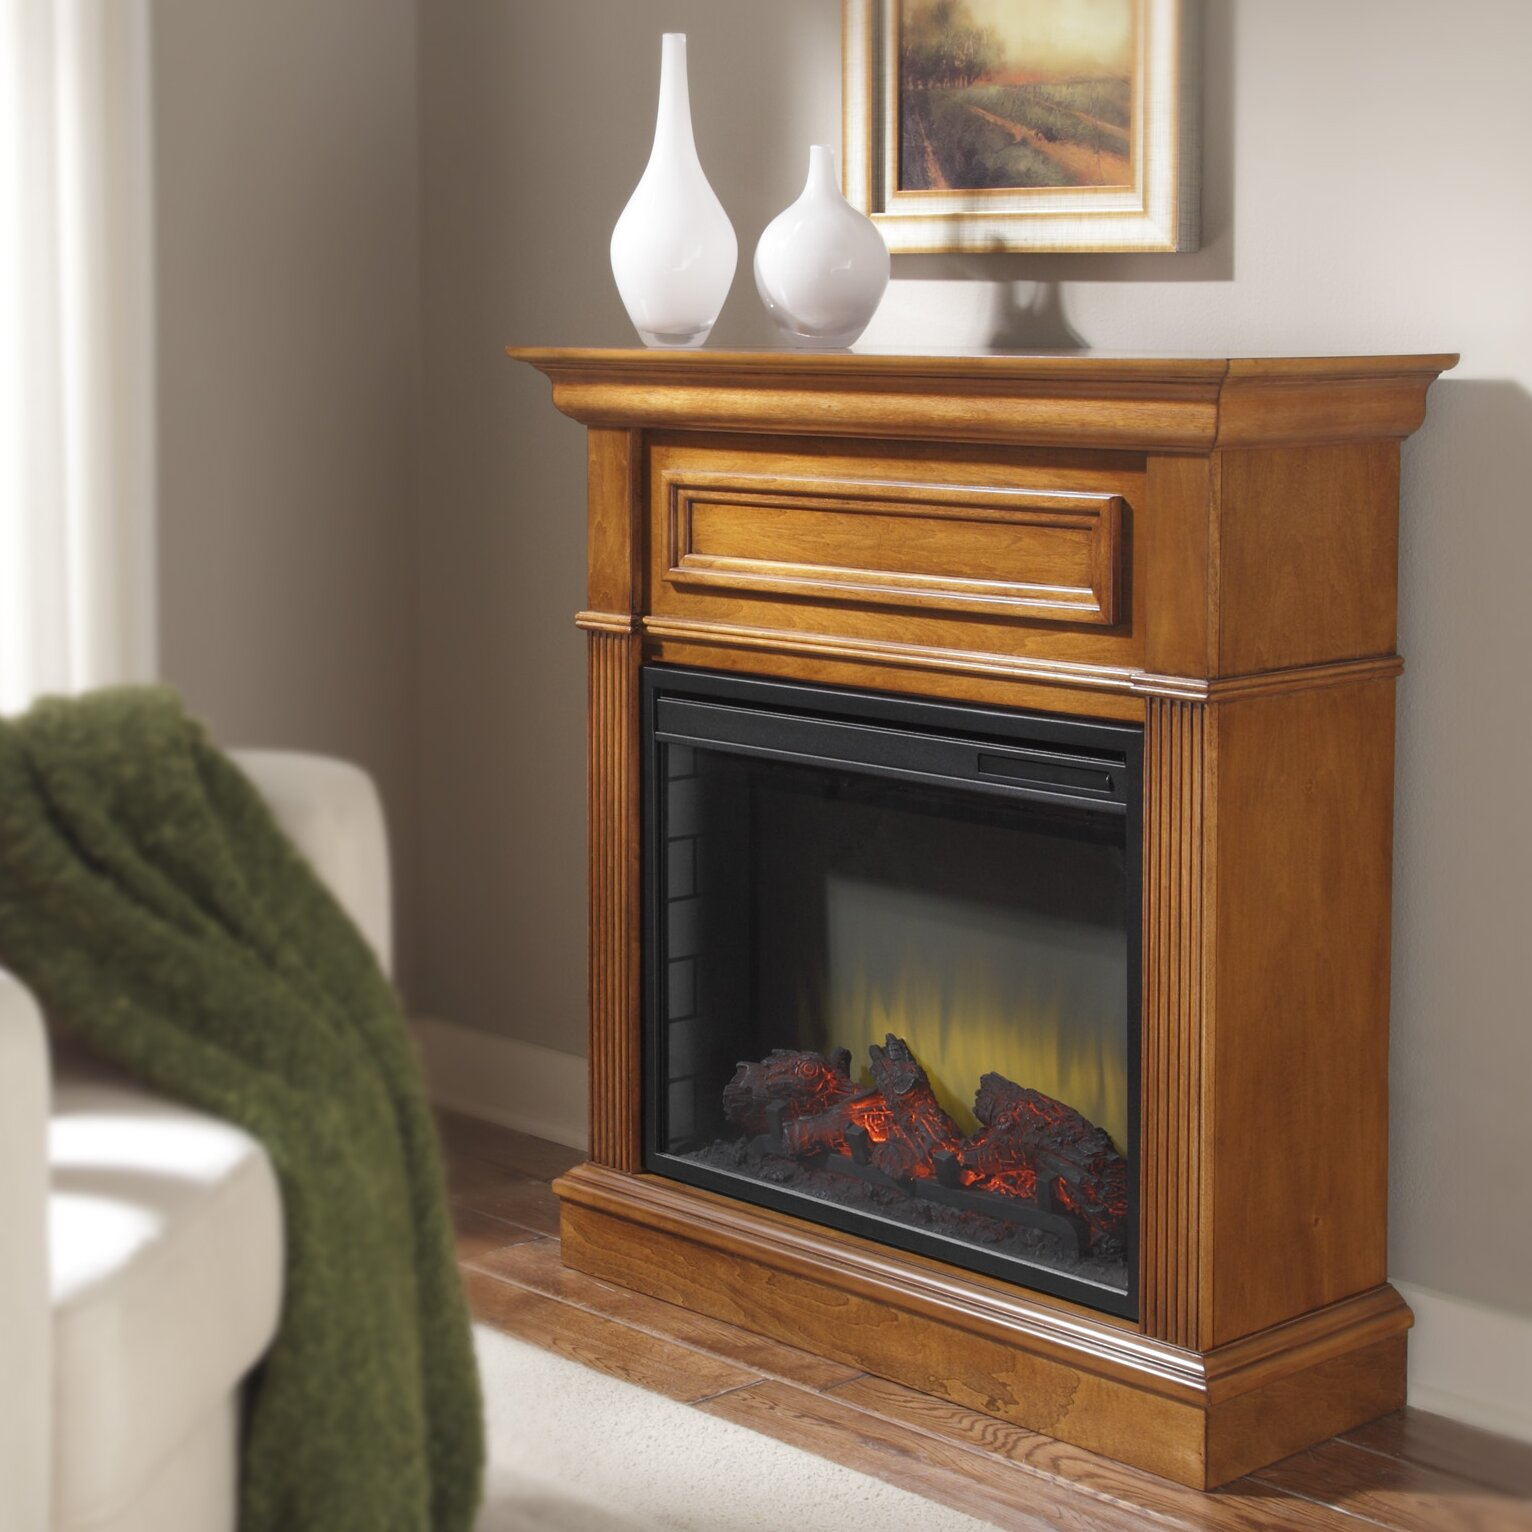 Pleasant Hearth Hawthorne Compact Electric Fireplace Mantle Reviews Wayfair Supply